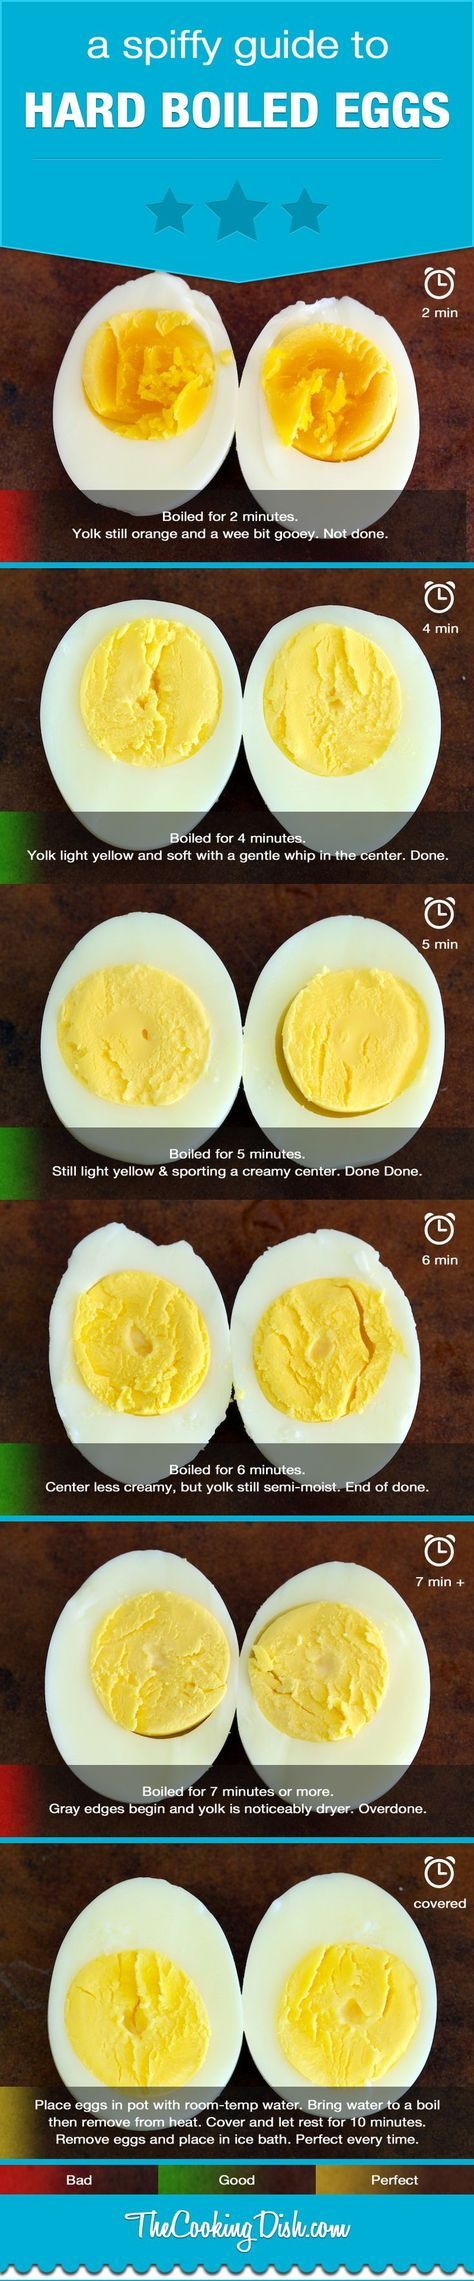 Hard Boiled Eggs Travel Fairly Well On Day Hikes, Provided You Pack Them  With Some